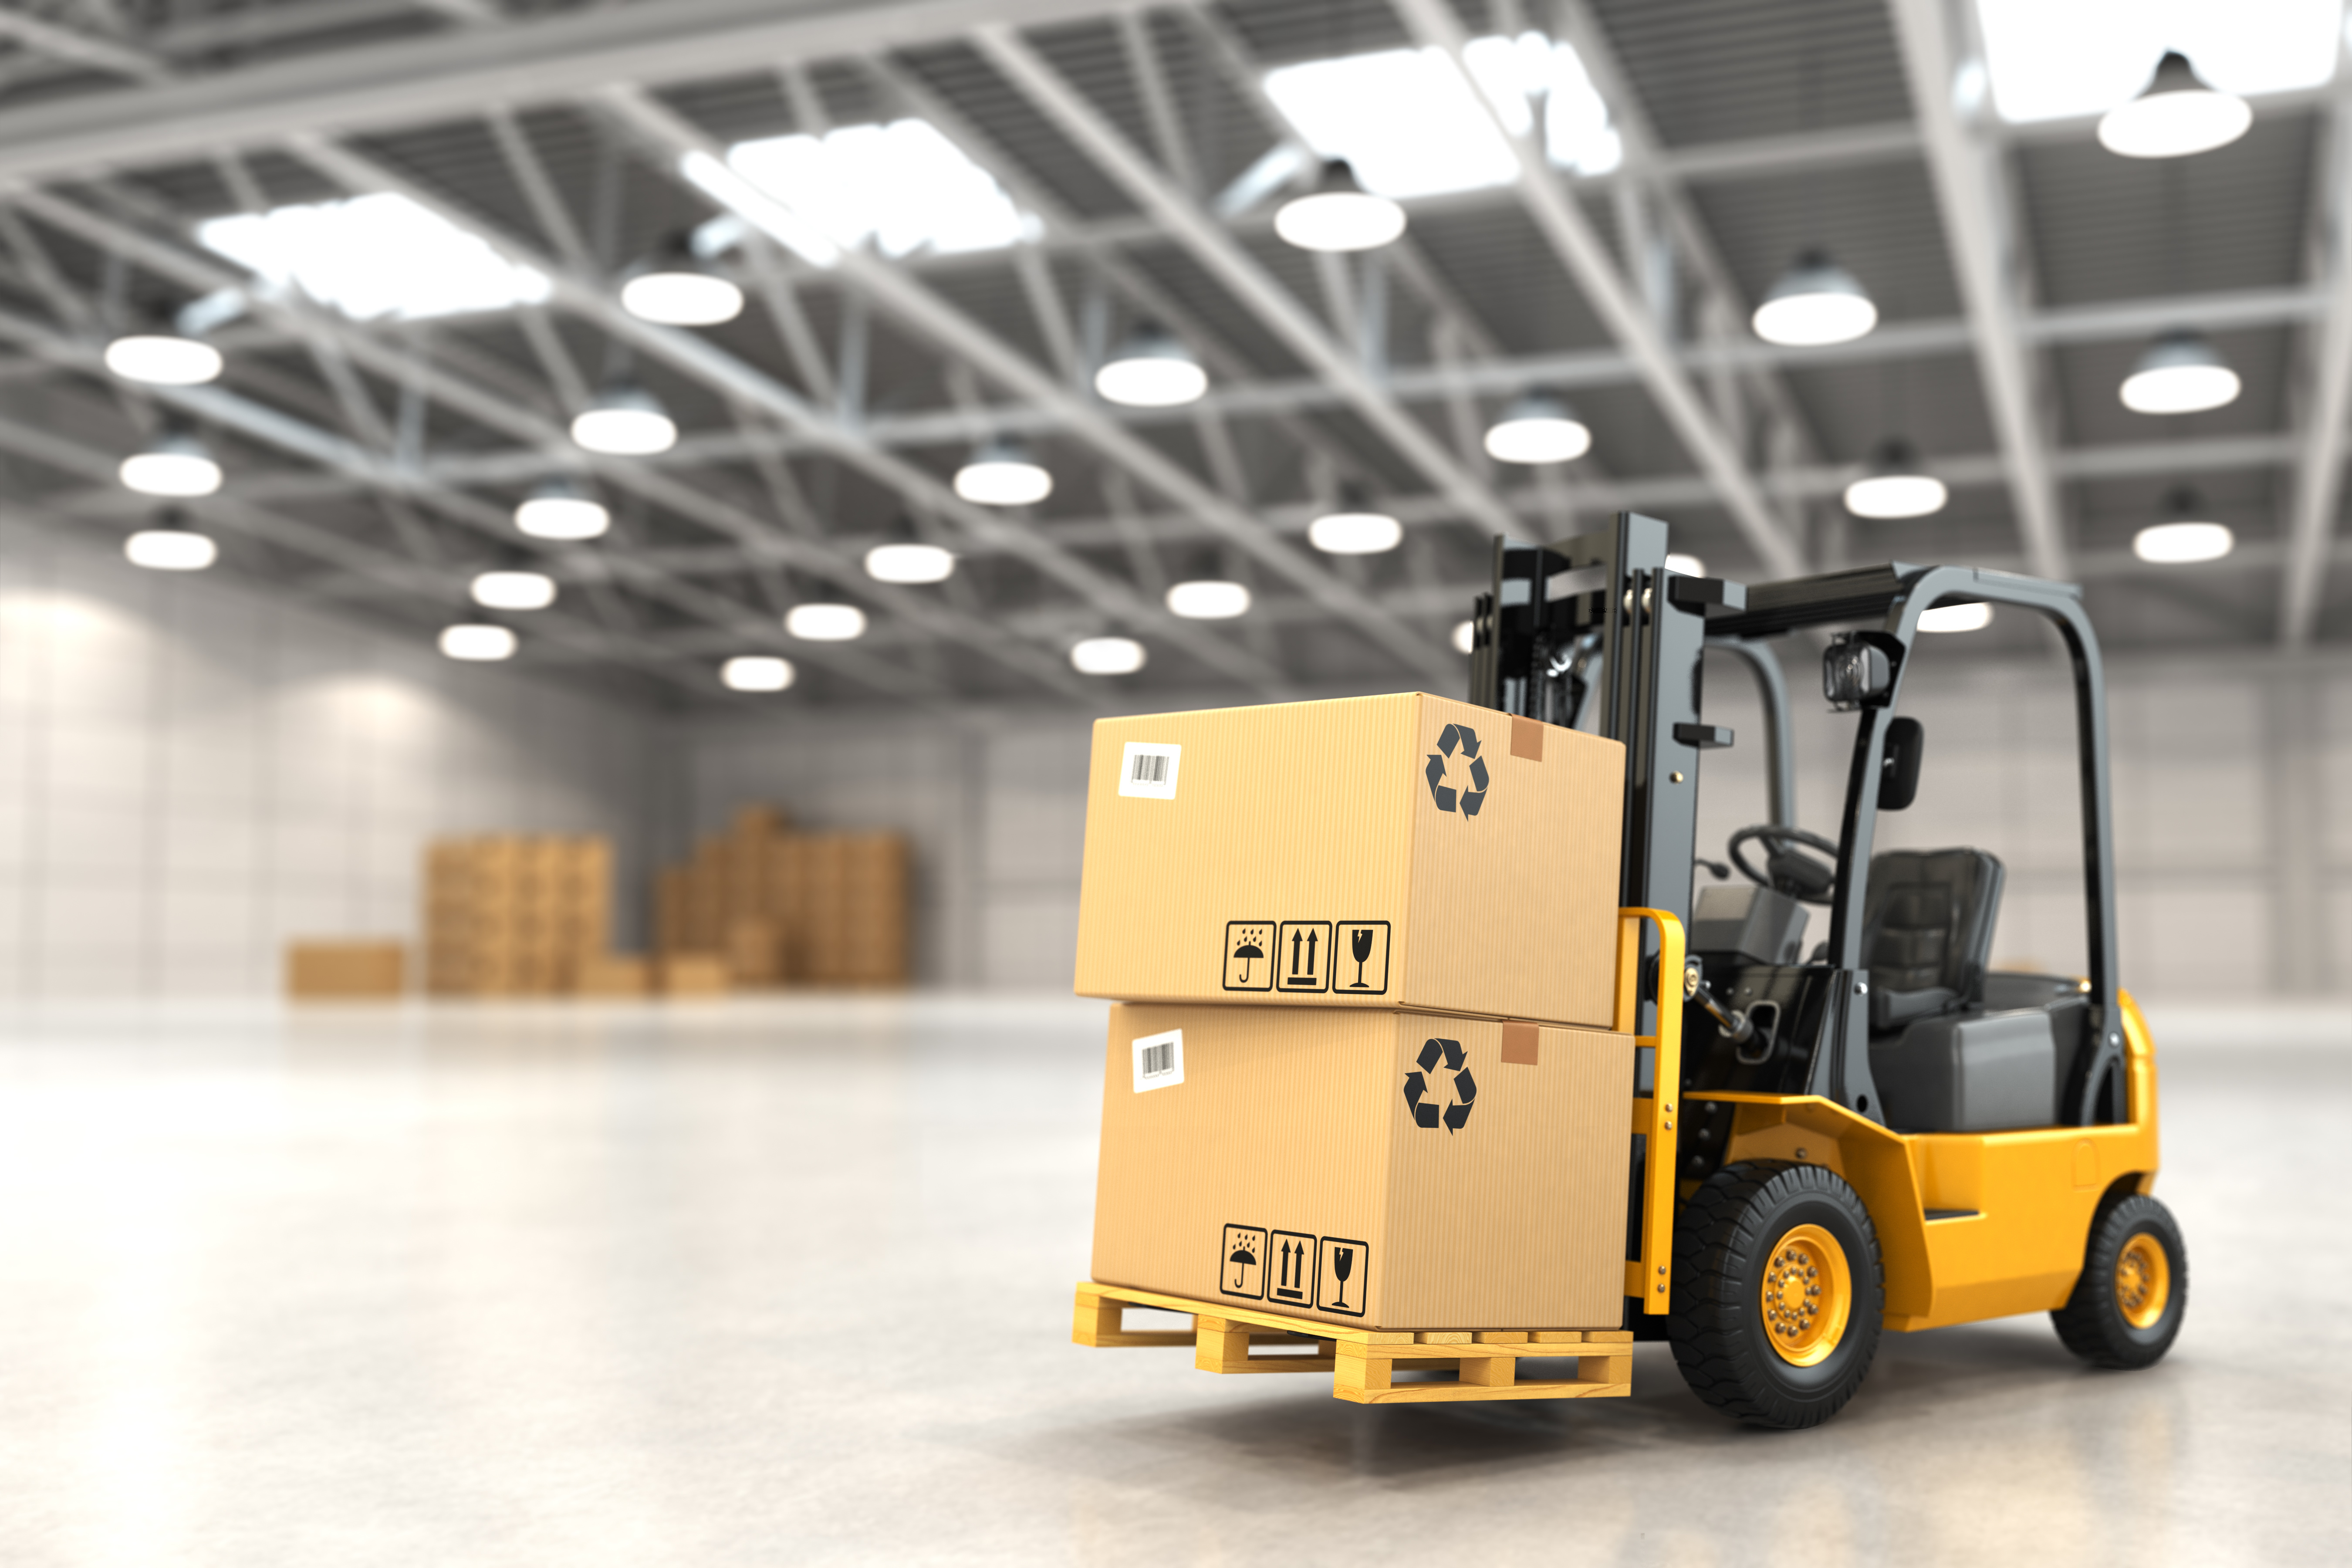 5 Most Important Parts of a Forklift | CertifyMe.net